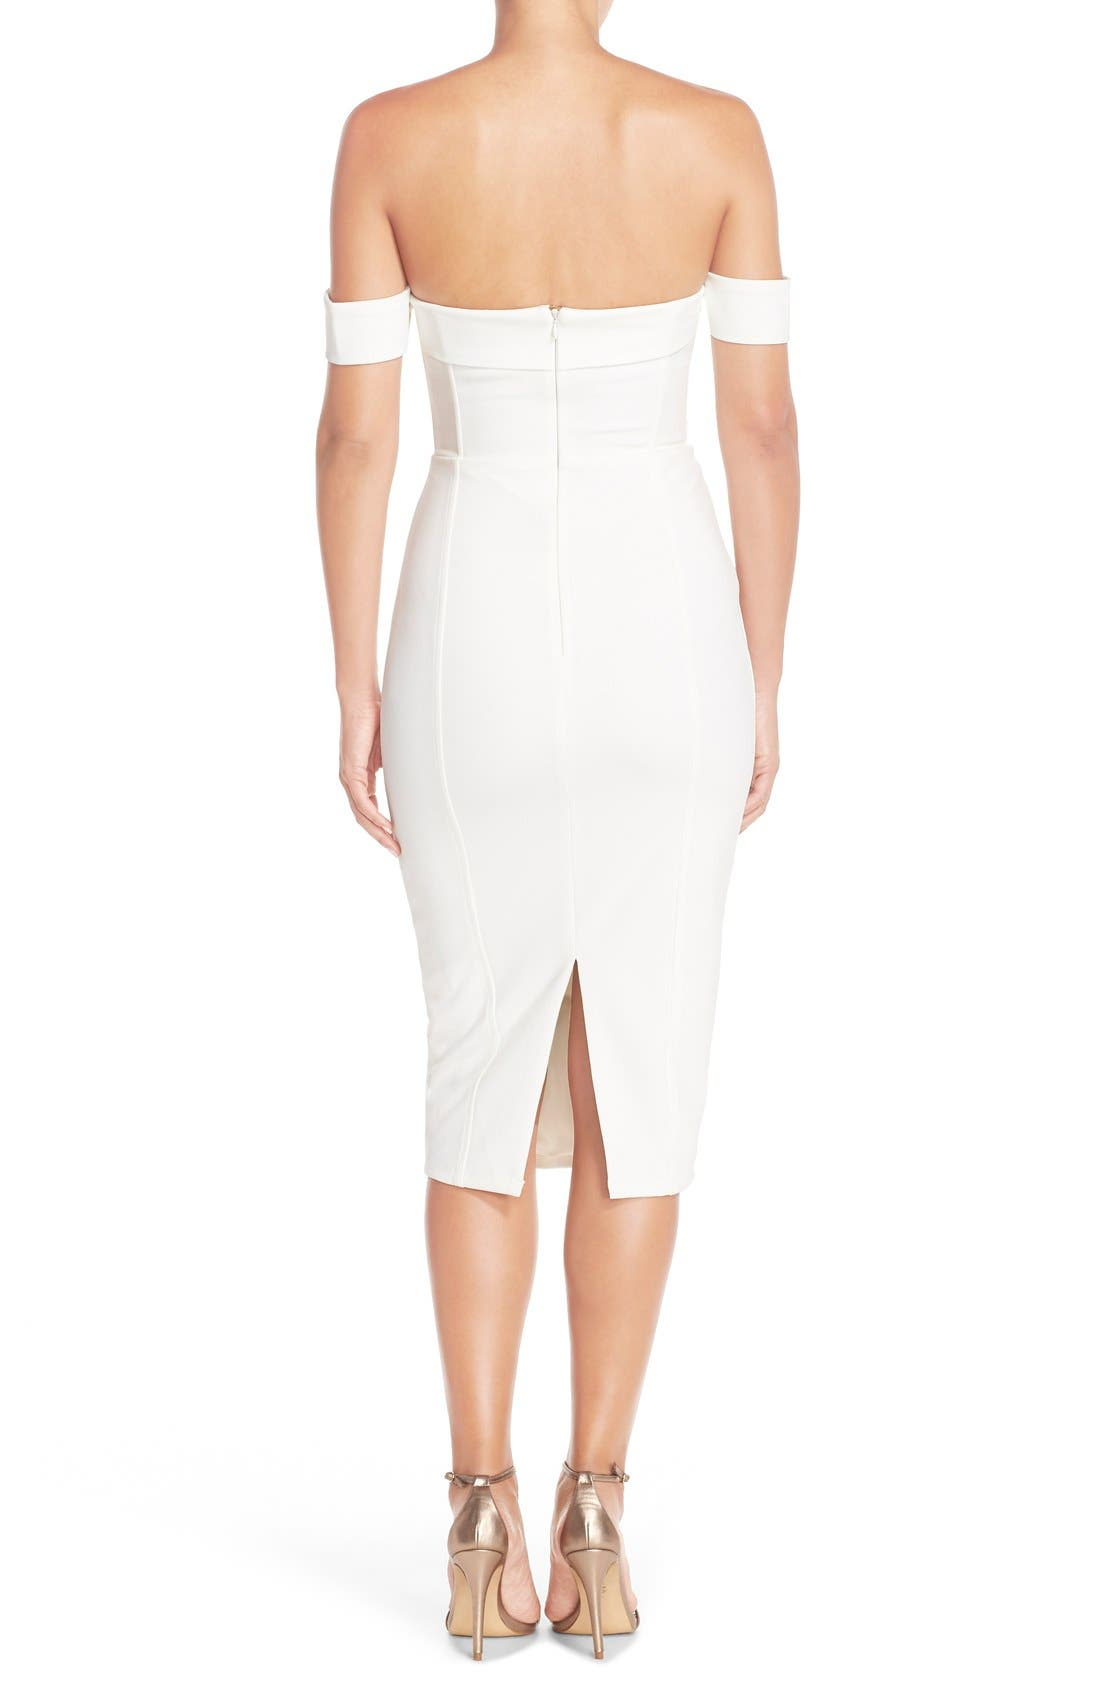 MishaCollection 'Chloe' Off the Shoulder Stretch Midi Dress,                             Alternate thumbnail 2, color,                             901